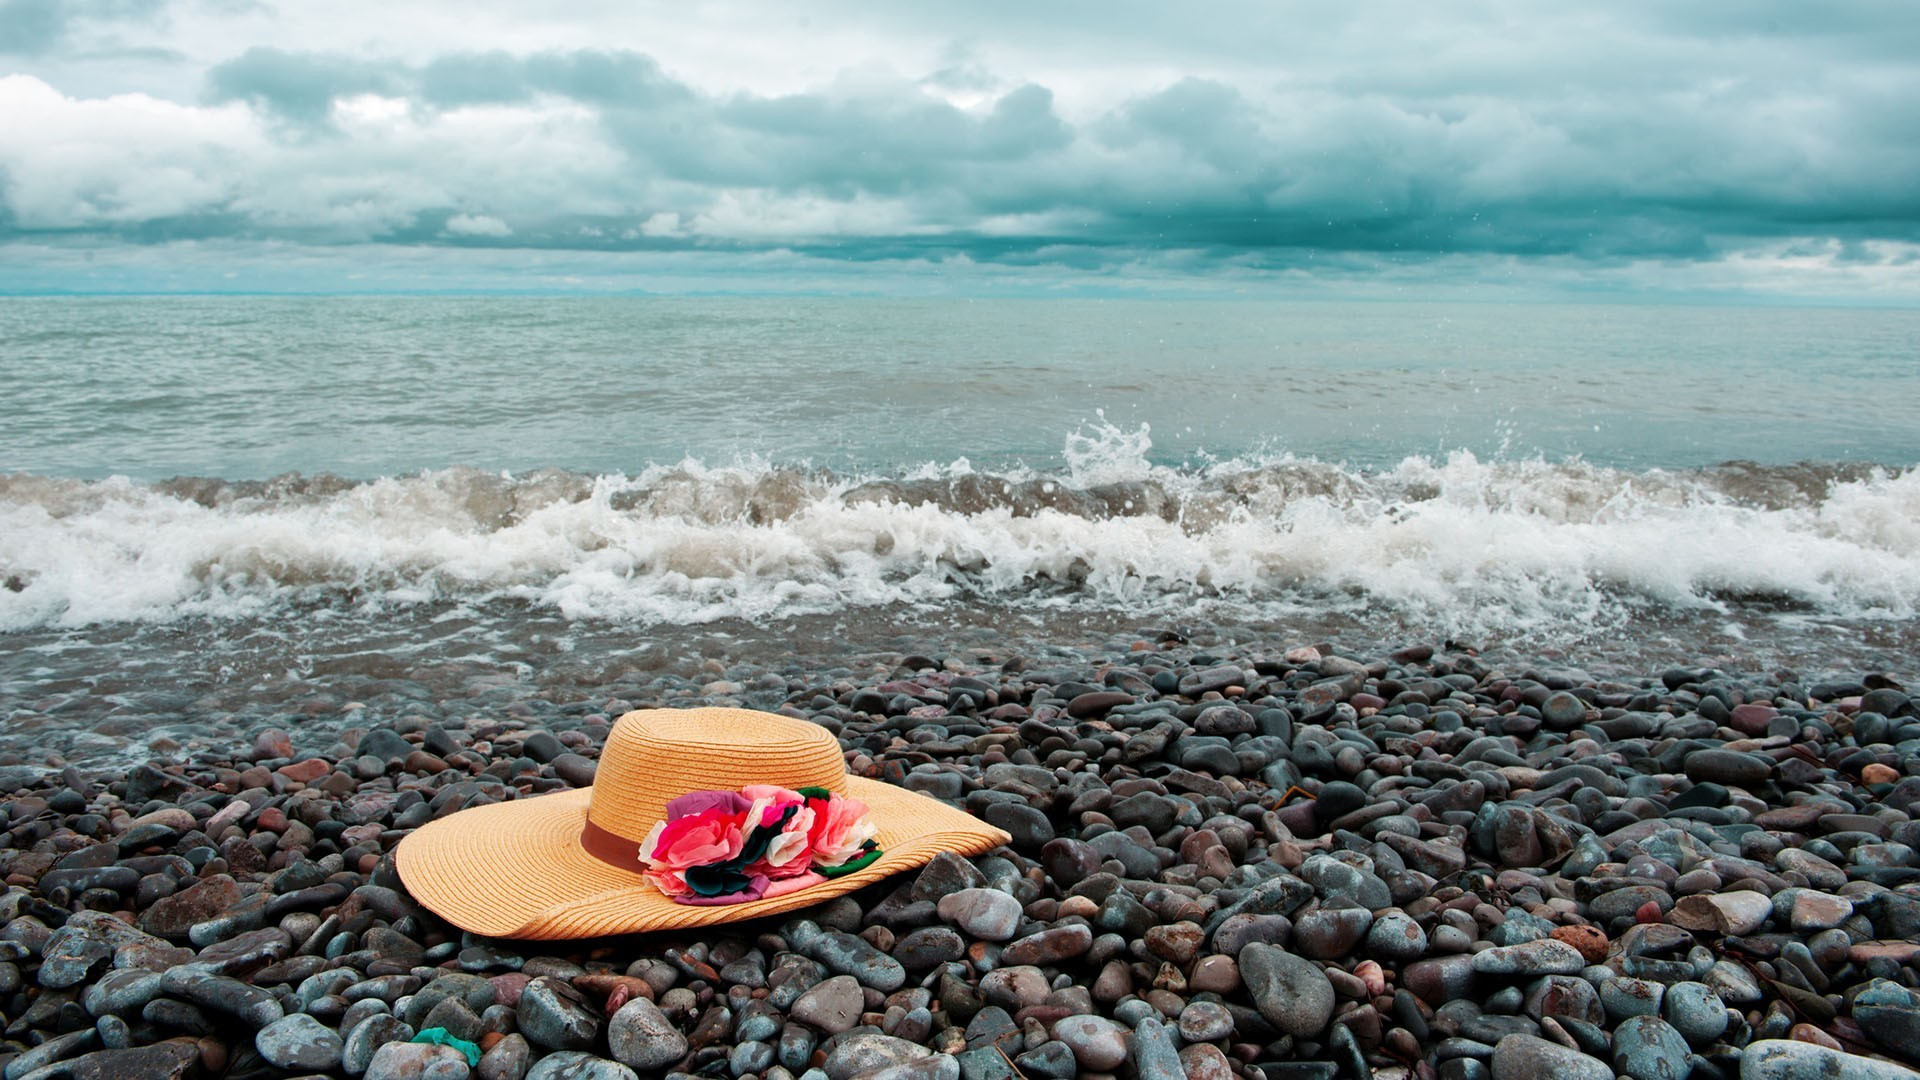 Hat on beach [1920 x 1080] Need #iPhone #6S #Plus #Wallpaper/ #Background  for #IPhone6SPlus? Follow iPhone 6S Plus 3Wallpapers/ #Backgrounds Must t…